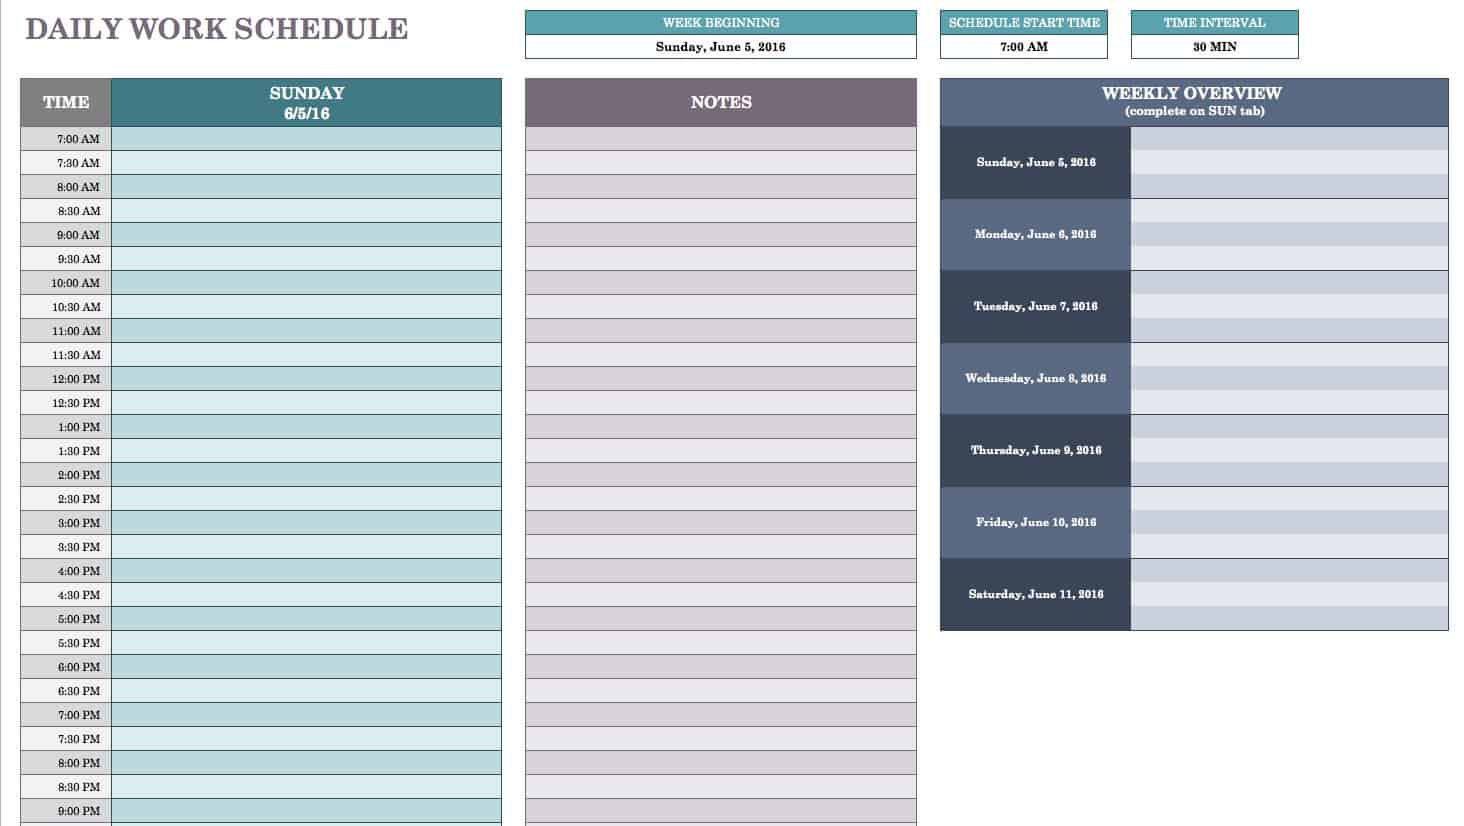 free daily schedule templates for excel smartsheet. Black Bedroom Furniture Sets. Home Design Ideas